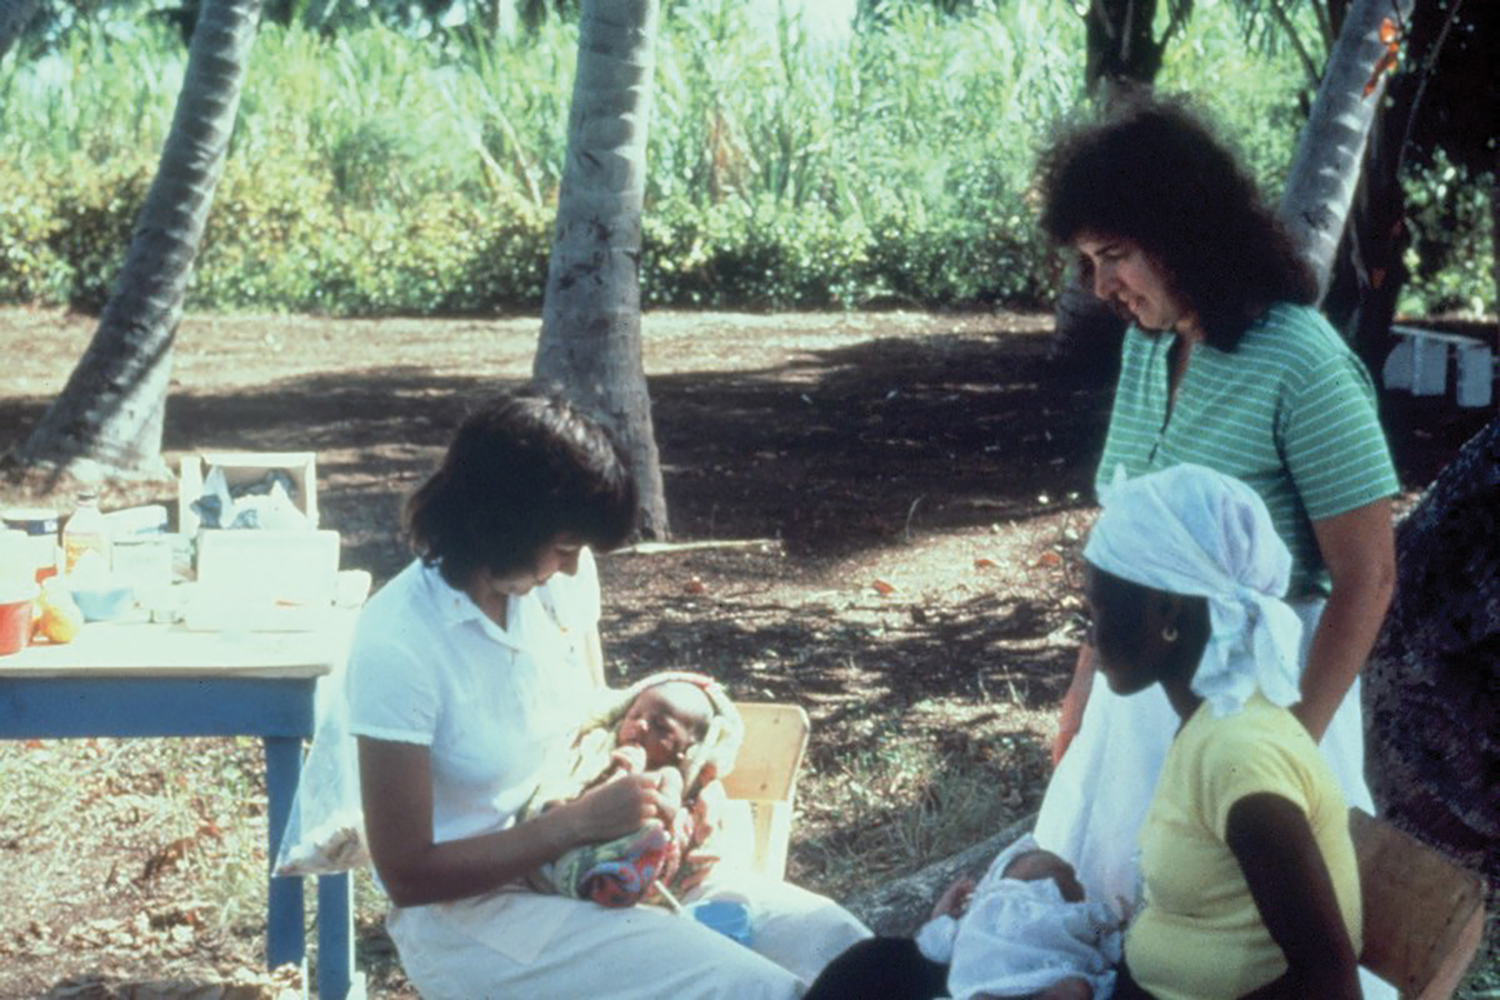 Thirty-five years ago, we began our clinic ministry outdoors on a wooden table under coconut trees.